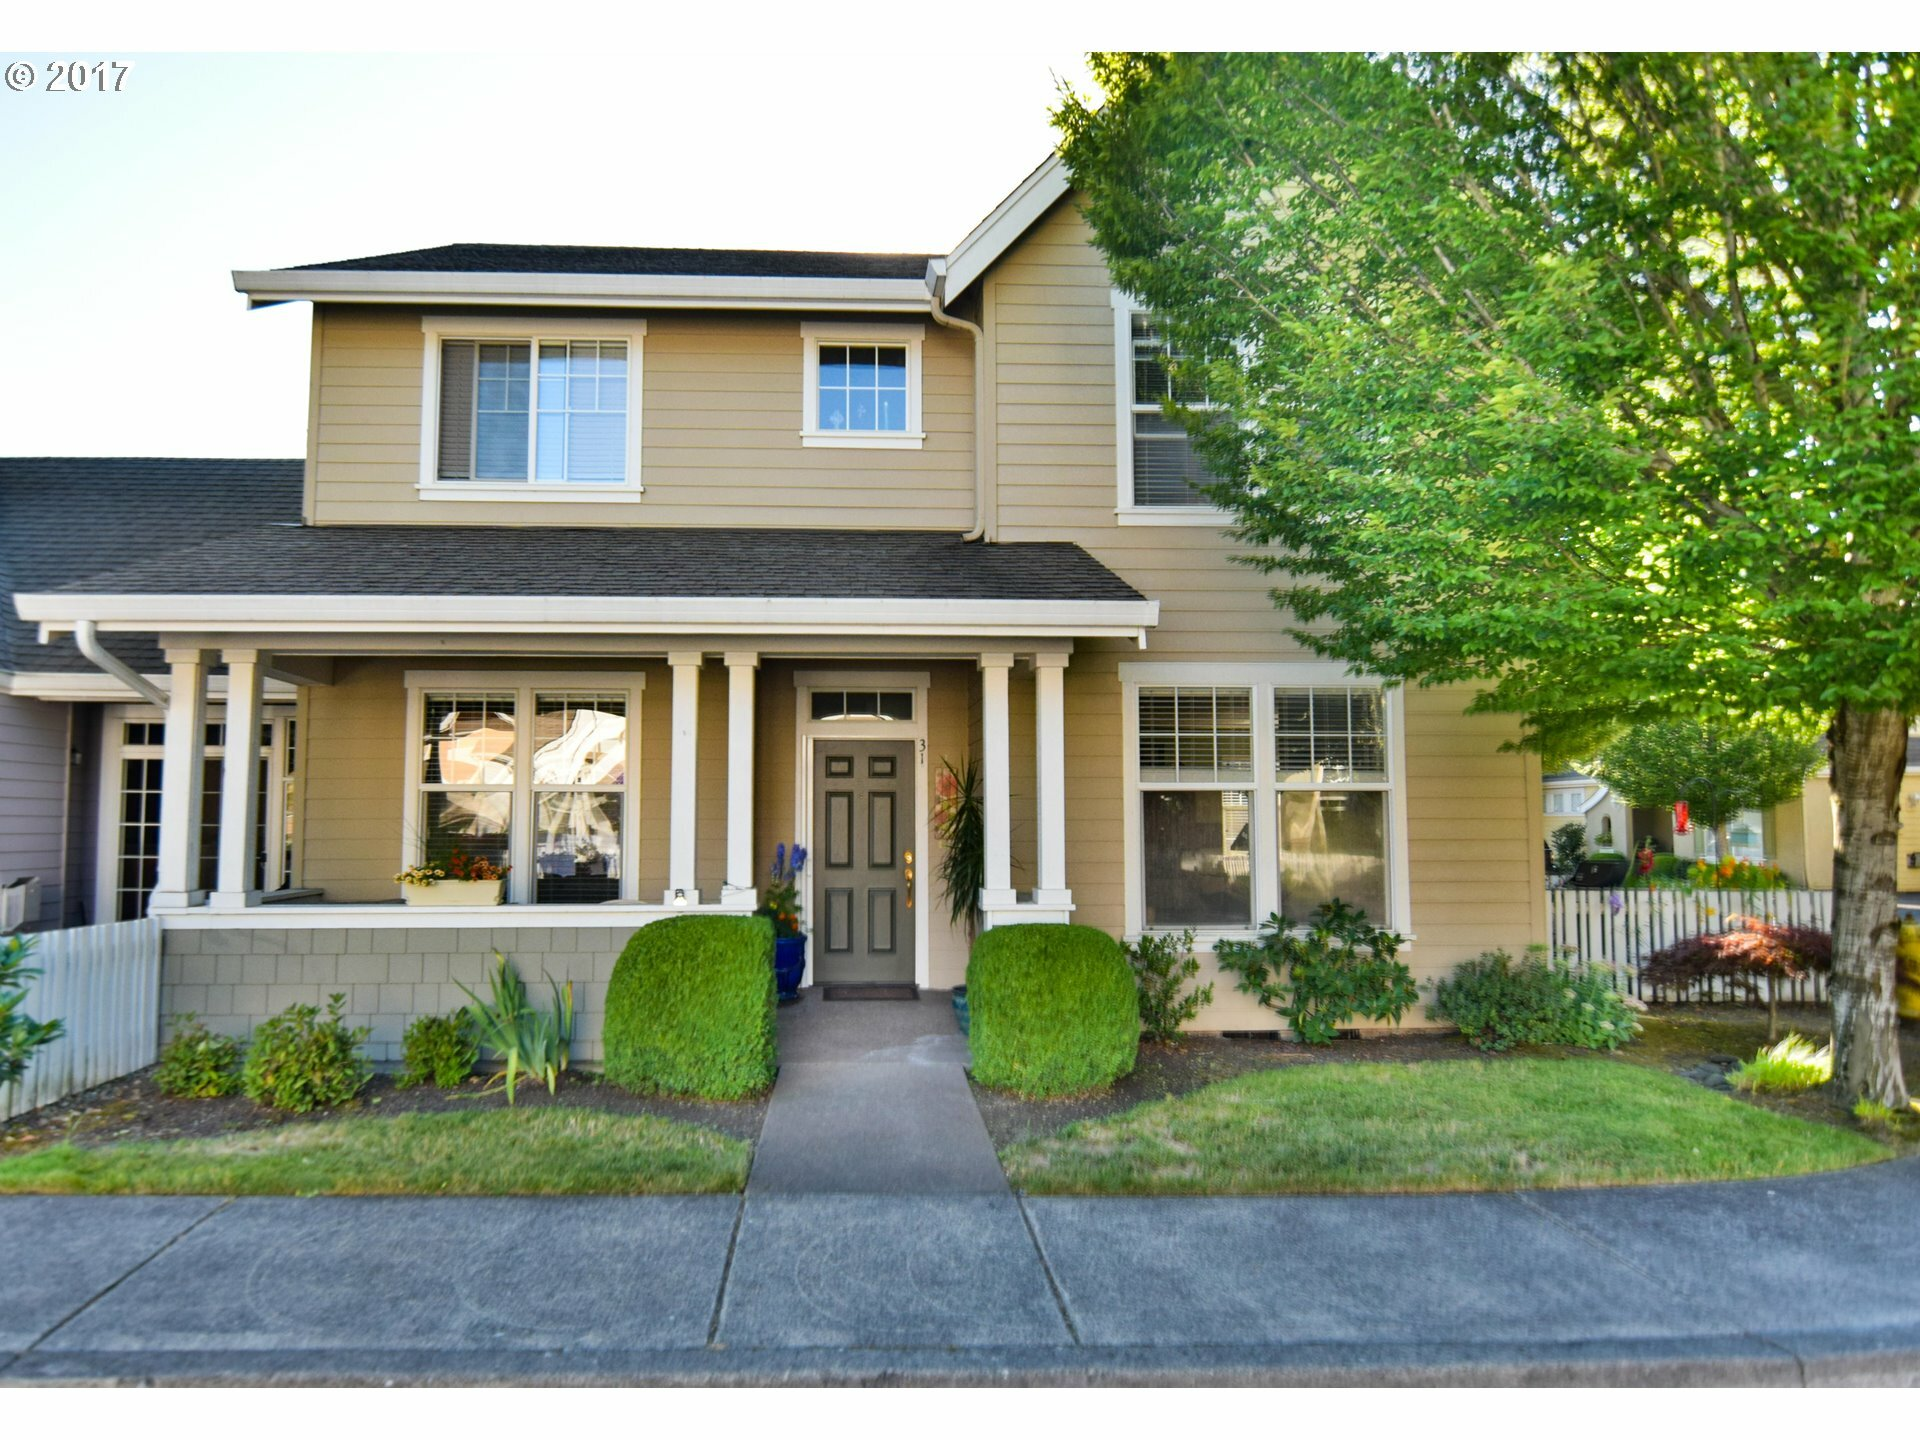 17146 Se 23rd Dr 31, Vancouver, WA - USA (photo 1)